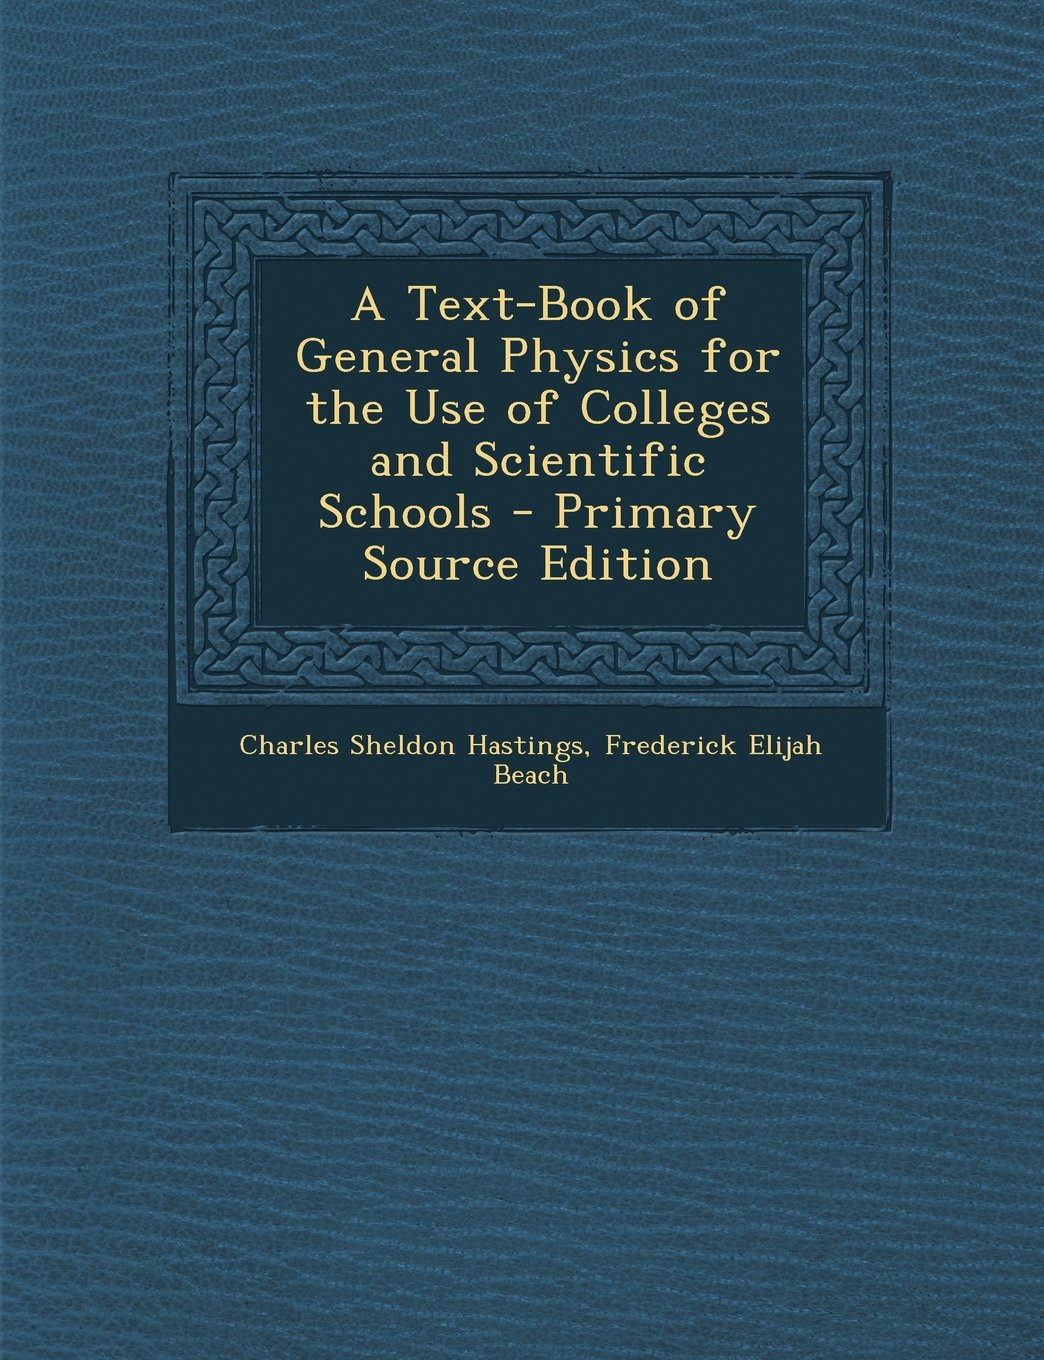 Download A Text-Book of General Physics for the Use of Colleges and Scientific Schools PDF